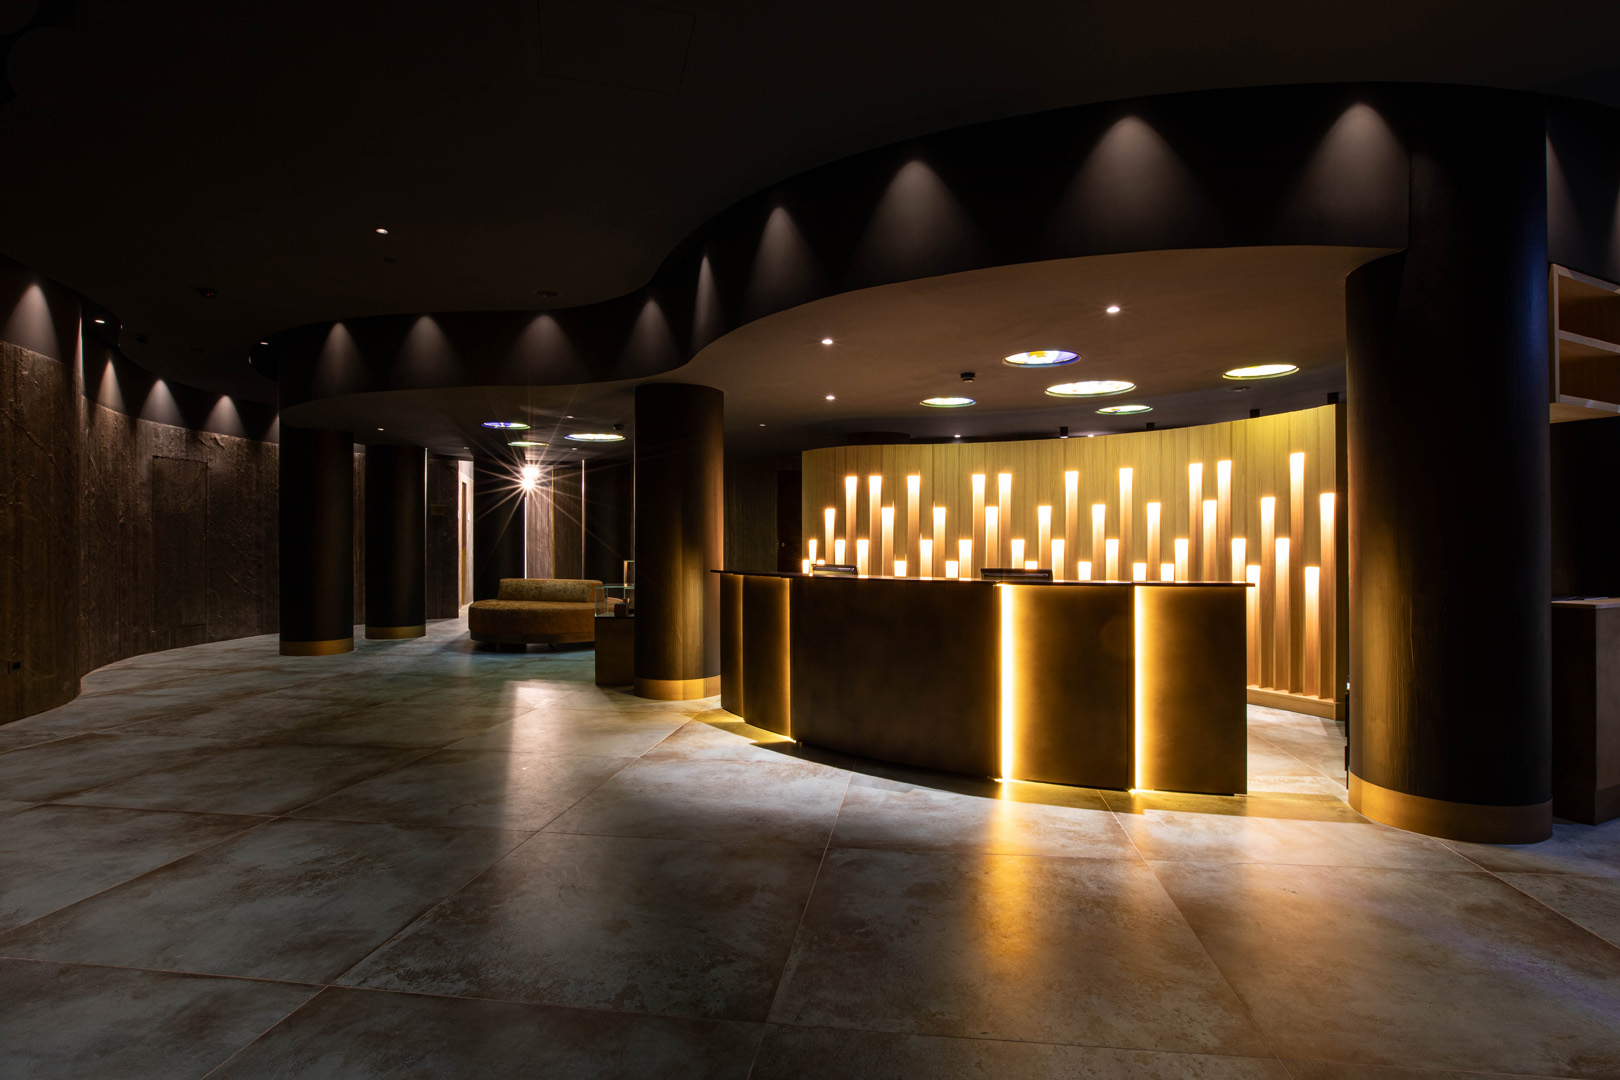 TIBI SPA: A NEW WELLNESS CENTER ON THE ROME'S OUTSKIRTS